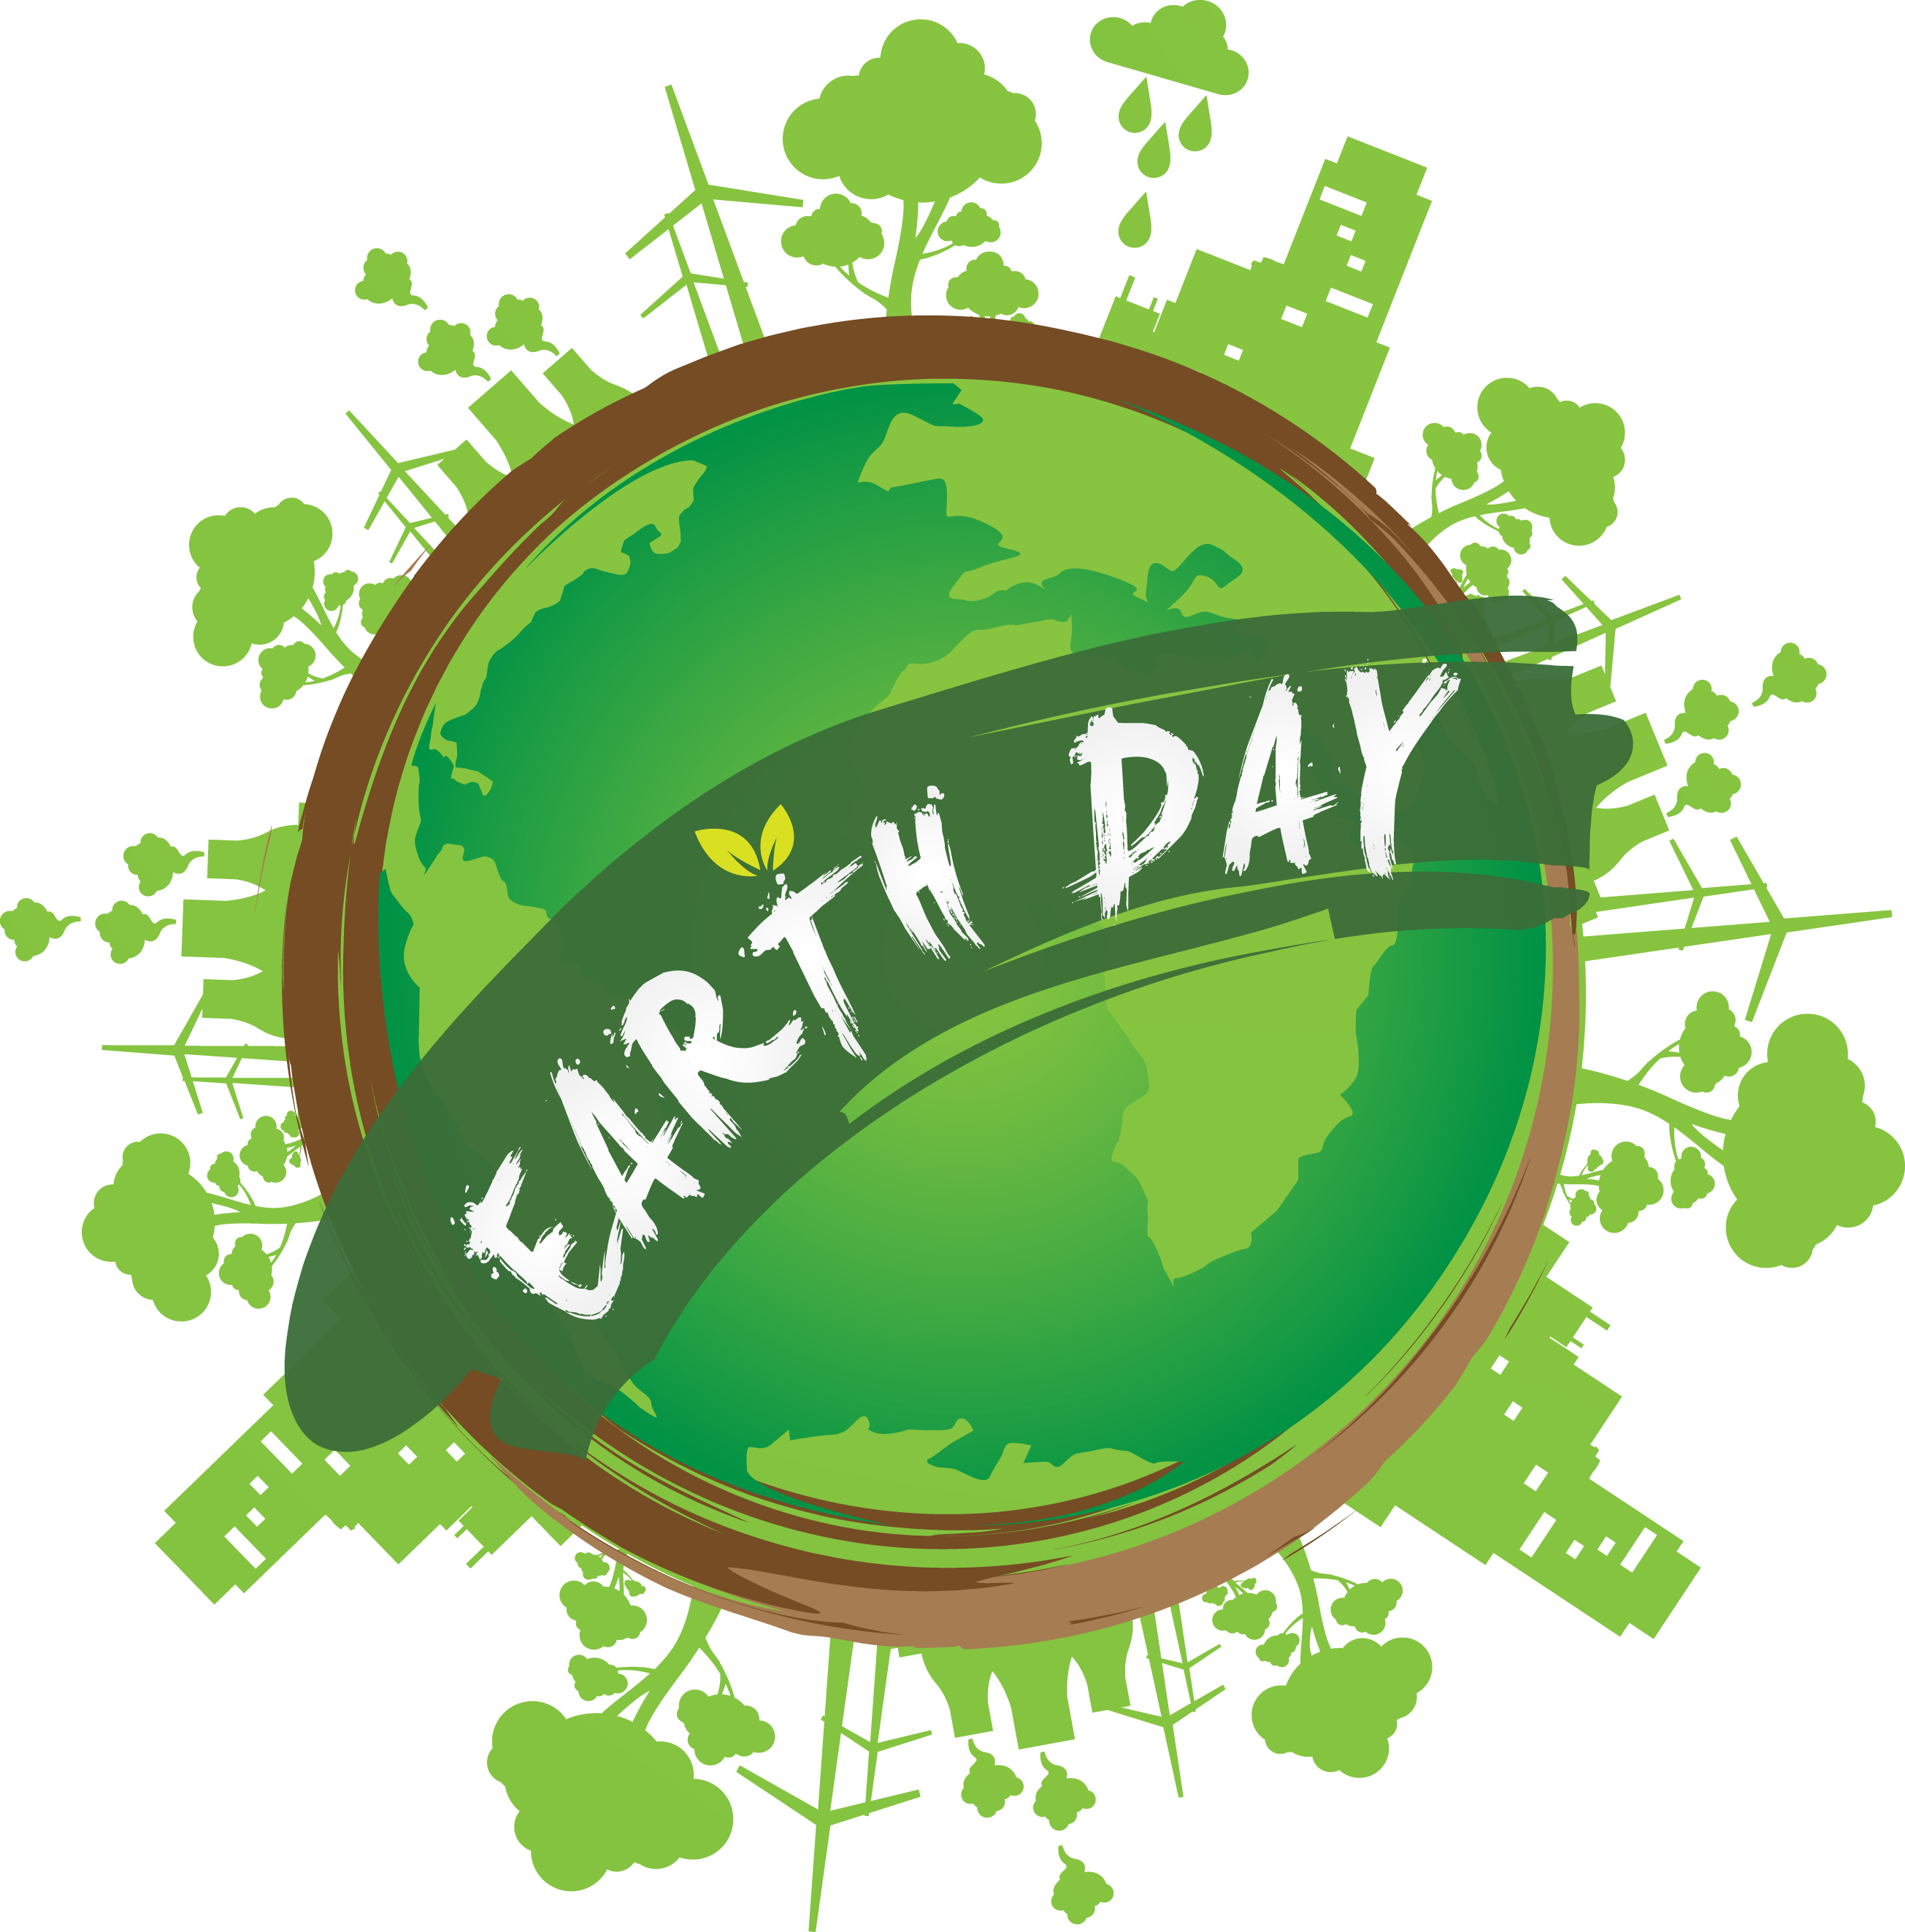 Earth day tree clipart graphic transparent stock Happy Earth Day Save Nature Green Pictures Hd - 896 - TransparentPNG graphic transparent stock